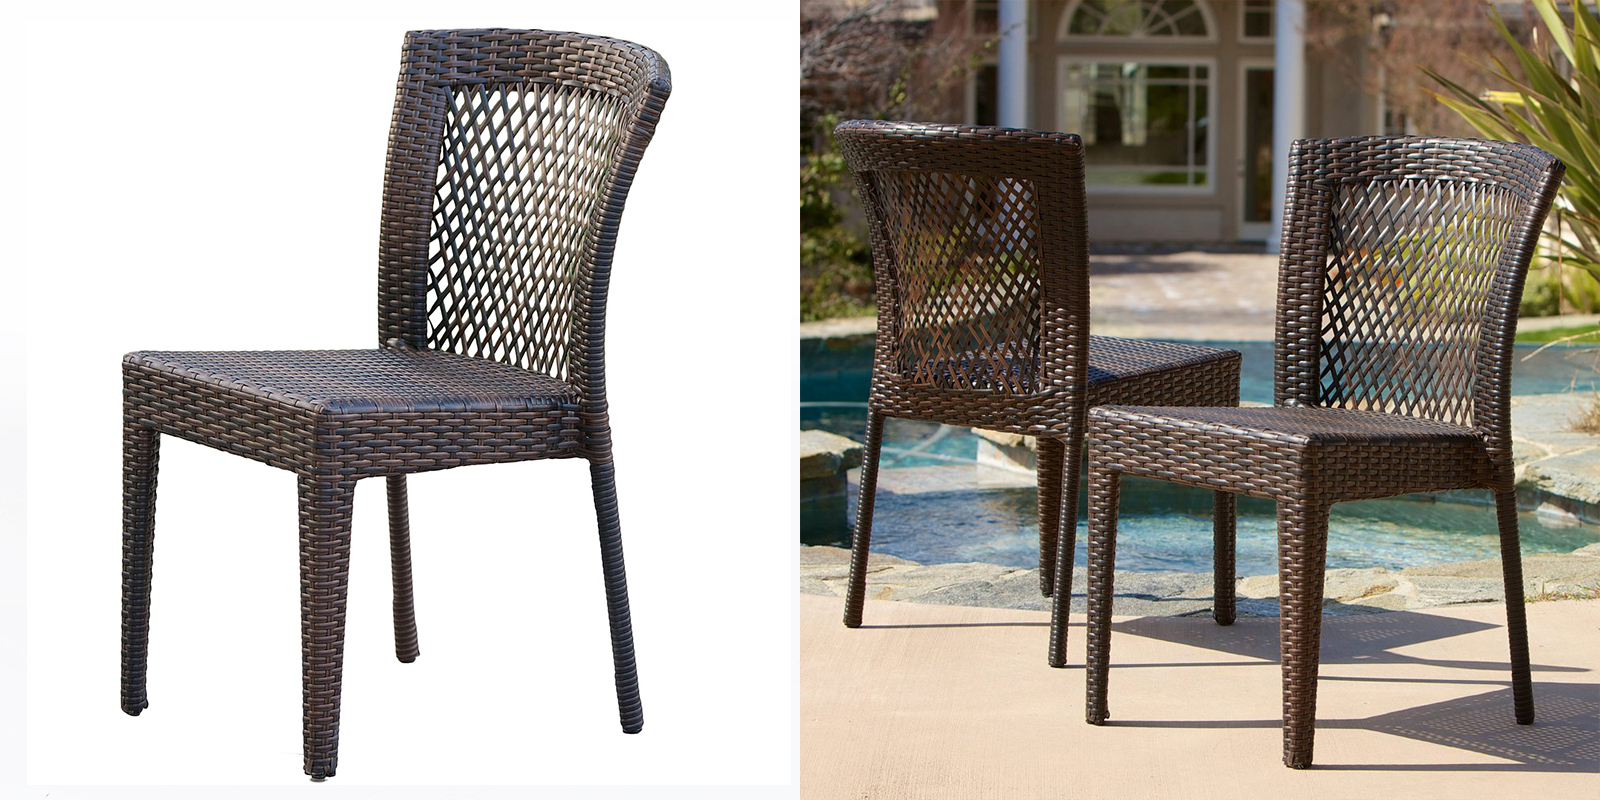 Patio Chair - Outdoor Wicker Chairs